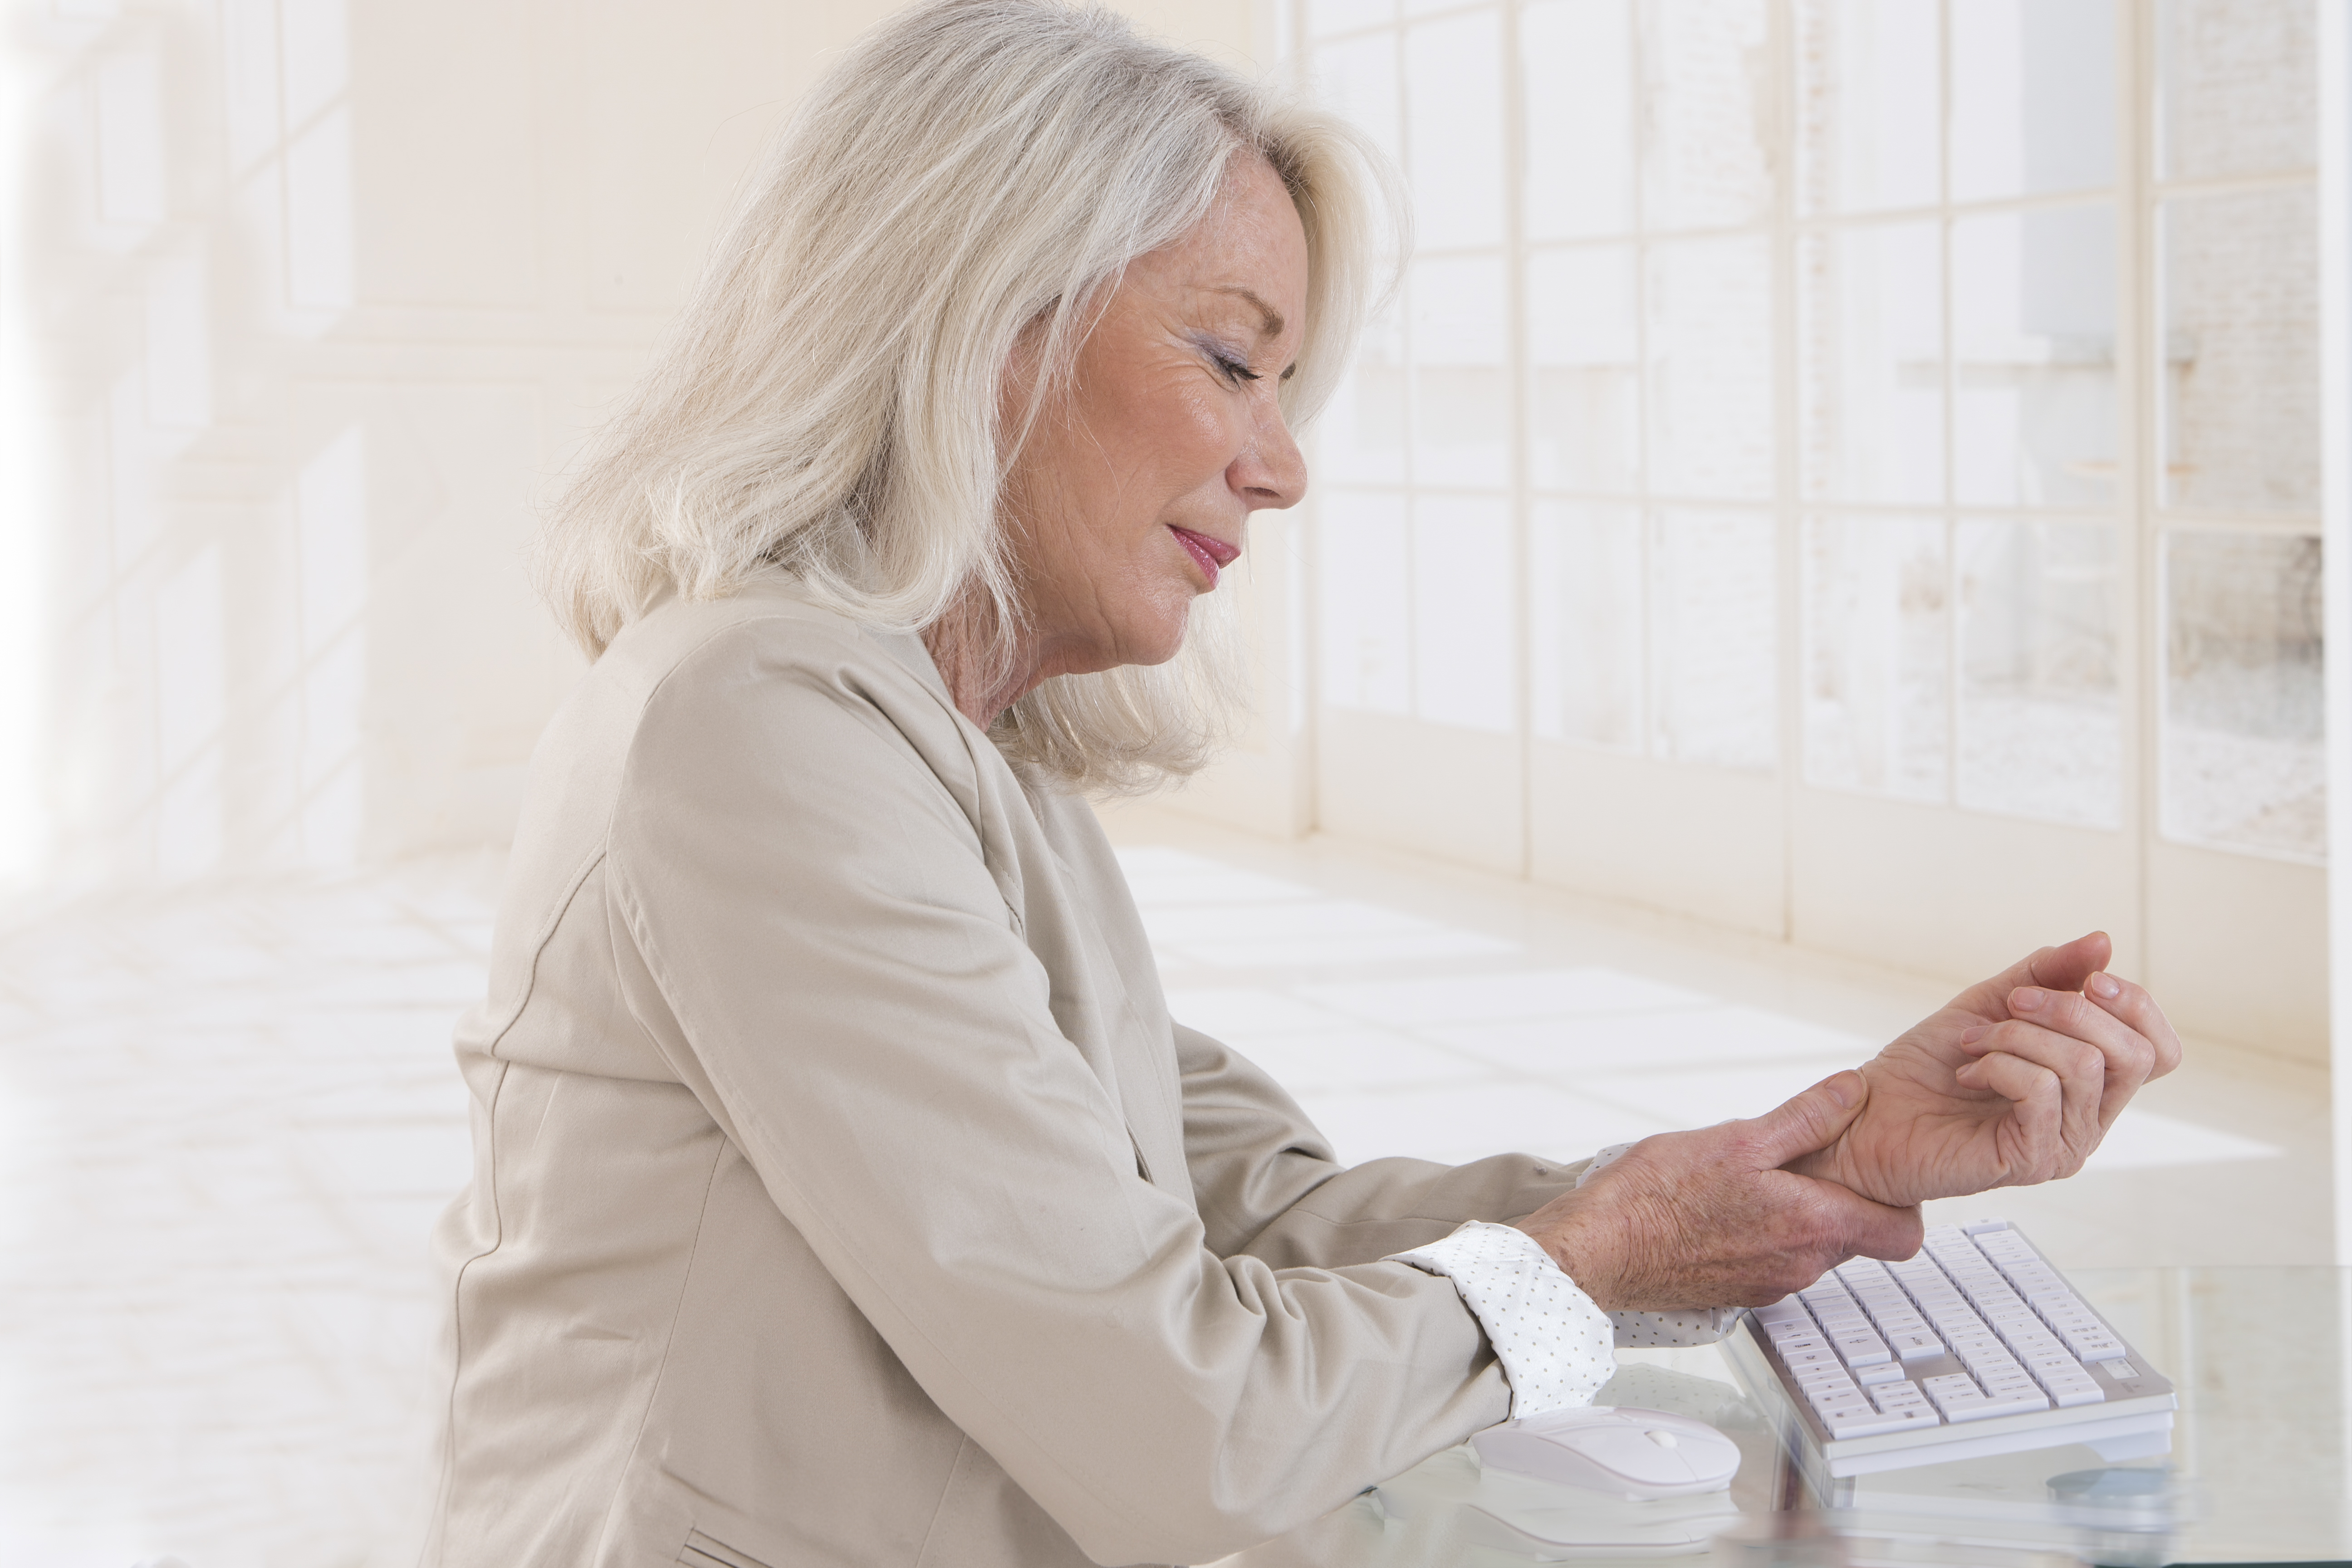 Can Carpal Tunnel Syndrome Cause Fingers to Twitch?